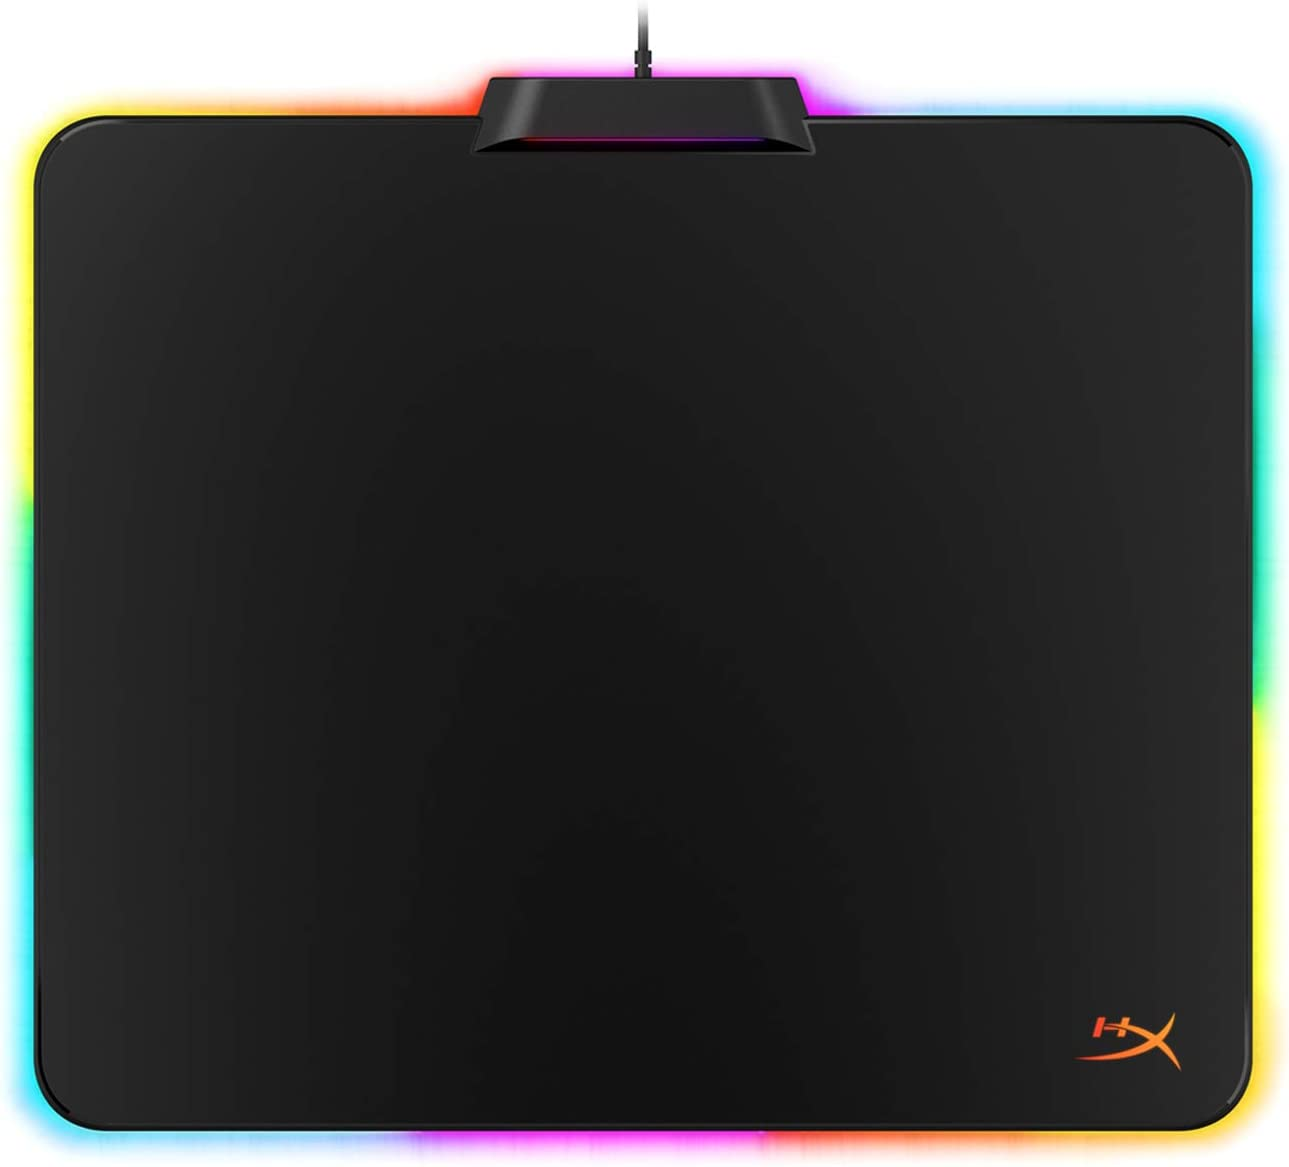 Mouse Pad HyperX  Fury S, talle L,  LED RGB, color Negro